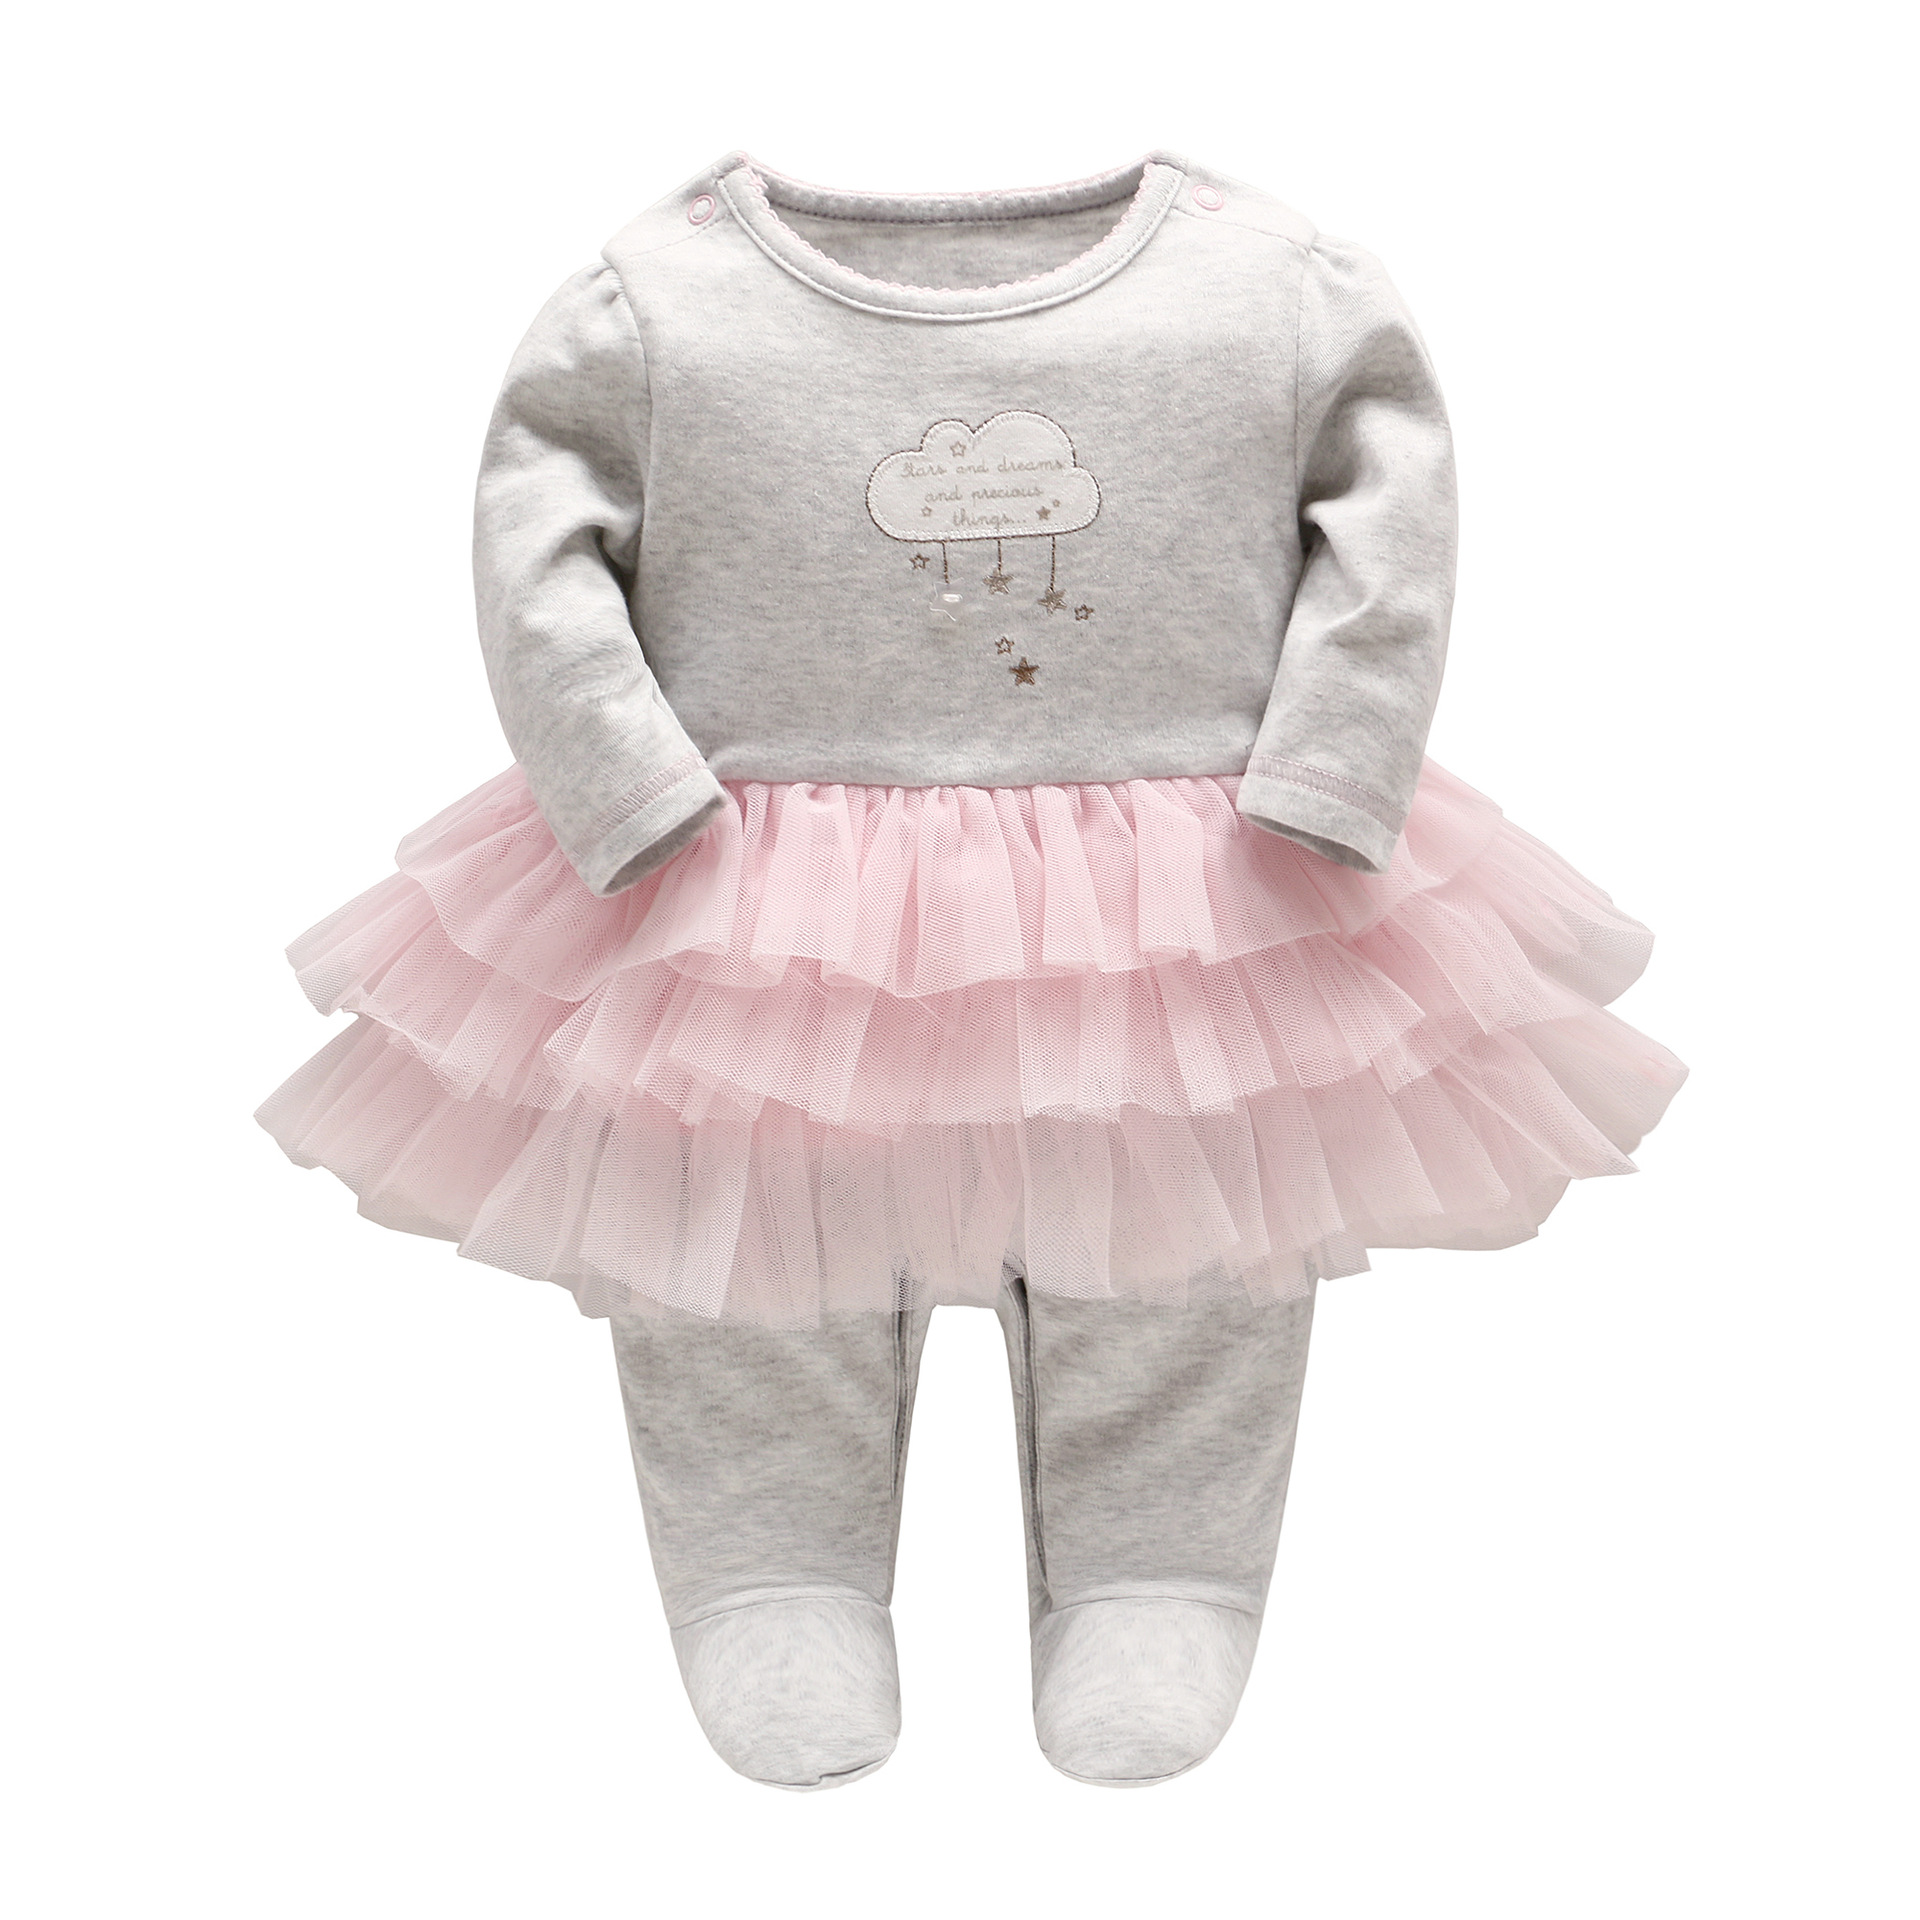 2018 Spring Baby Girl Romper Newborn Cotton Fluffy Romper Dress Infant Long-sleeve Cloud Star Embroidery Clothing Girls Onesie hy2062 gentleman vest cotton baby s long sleeve infant romper cloth black gray size xl